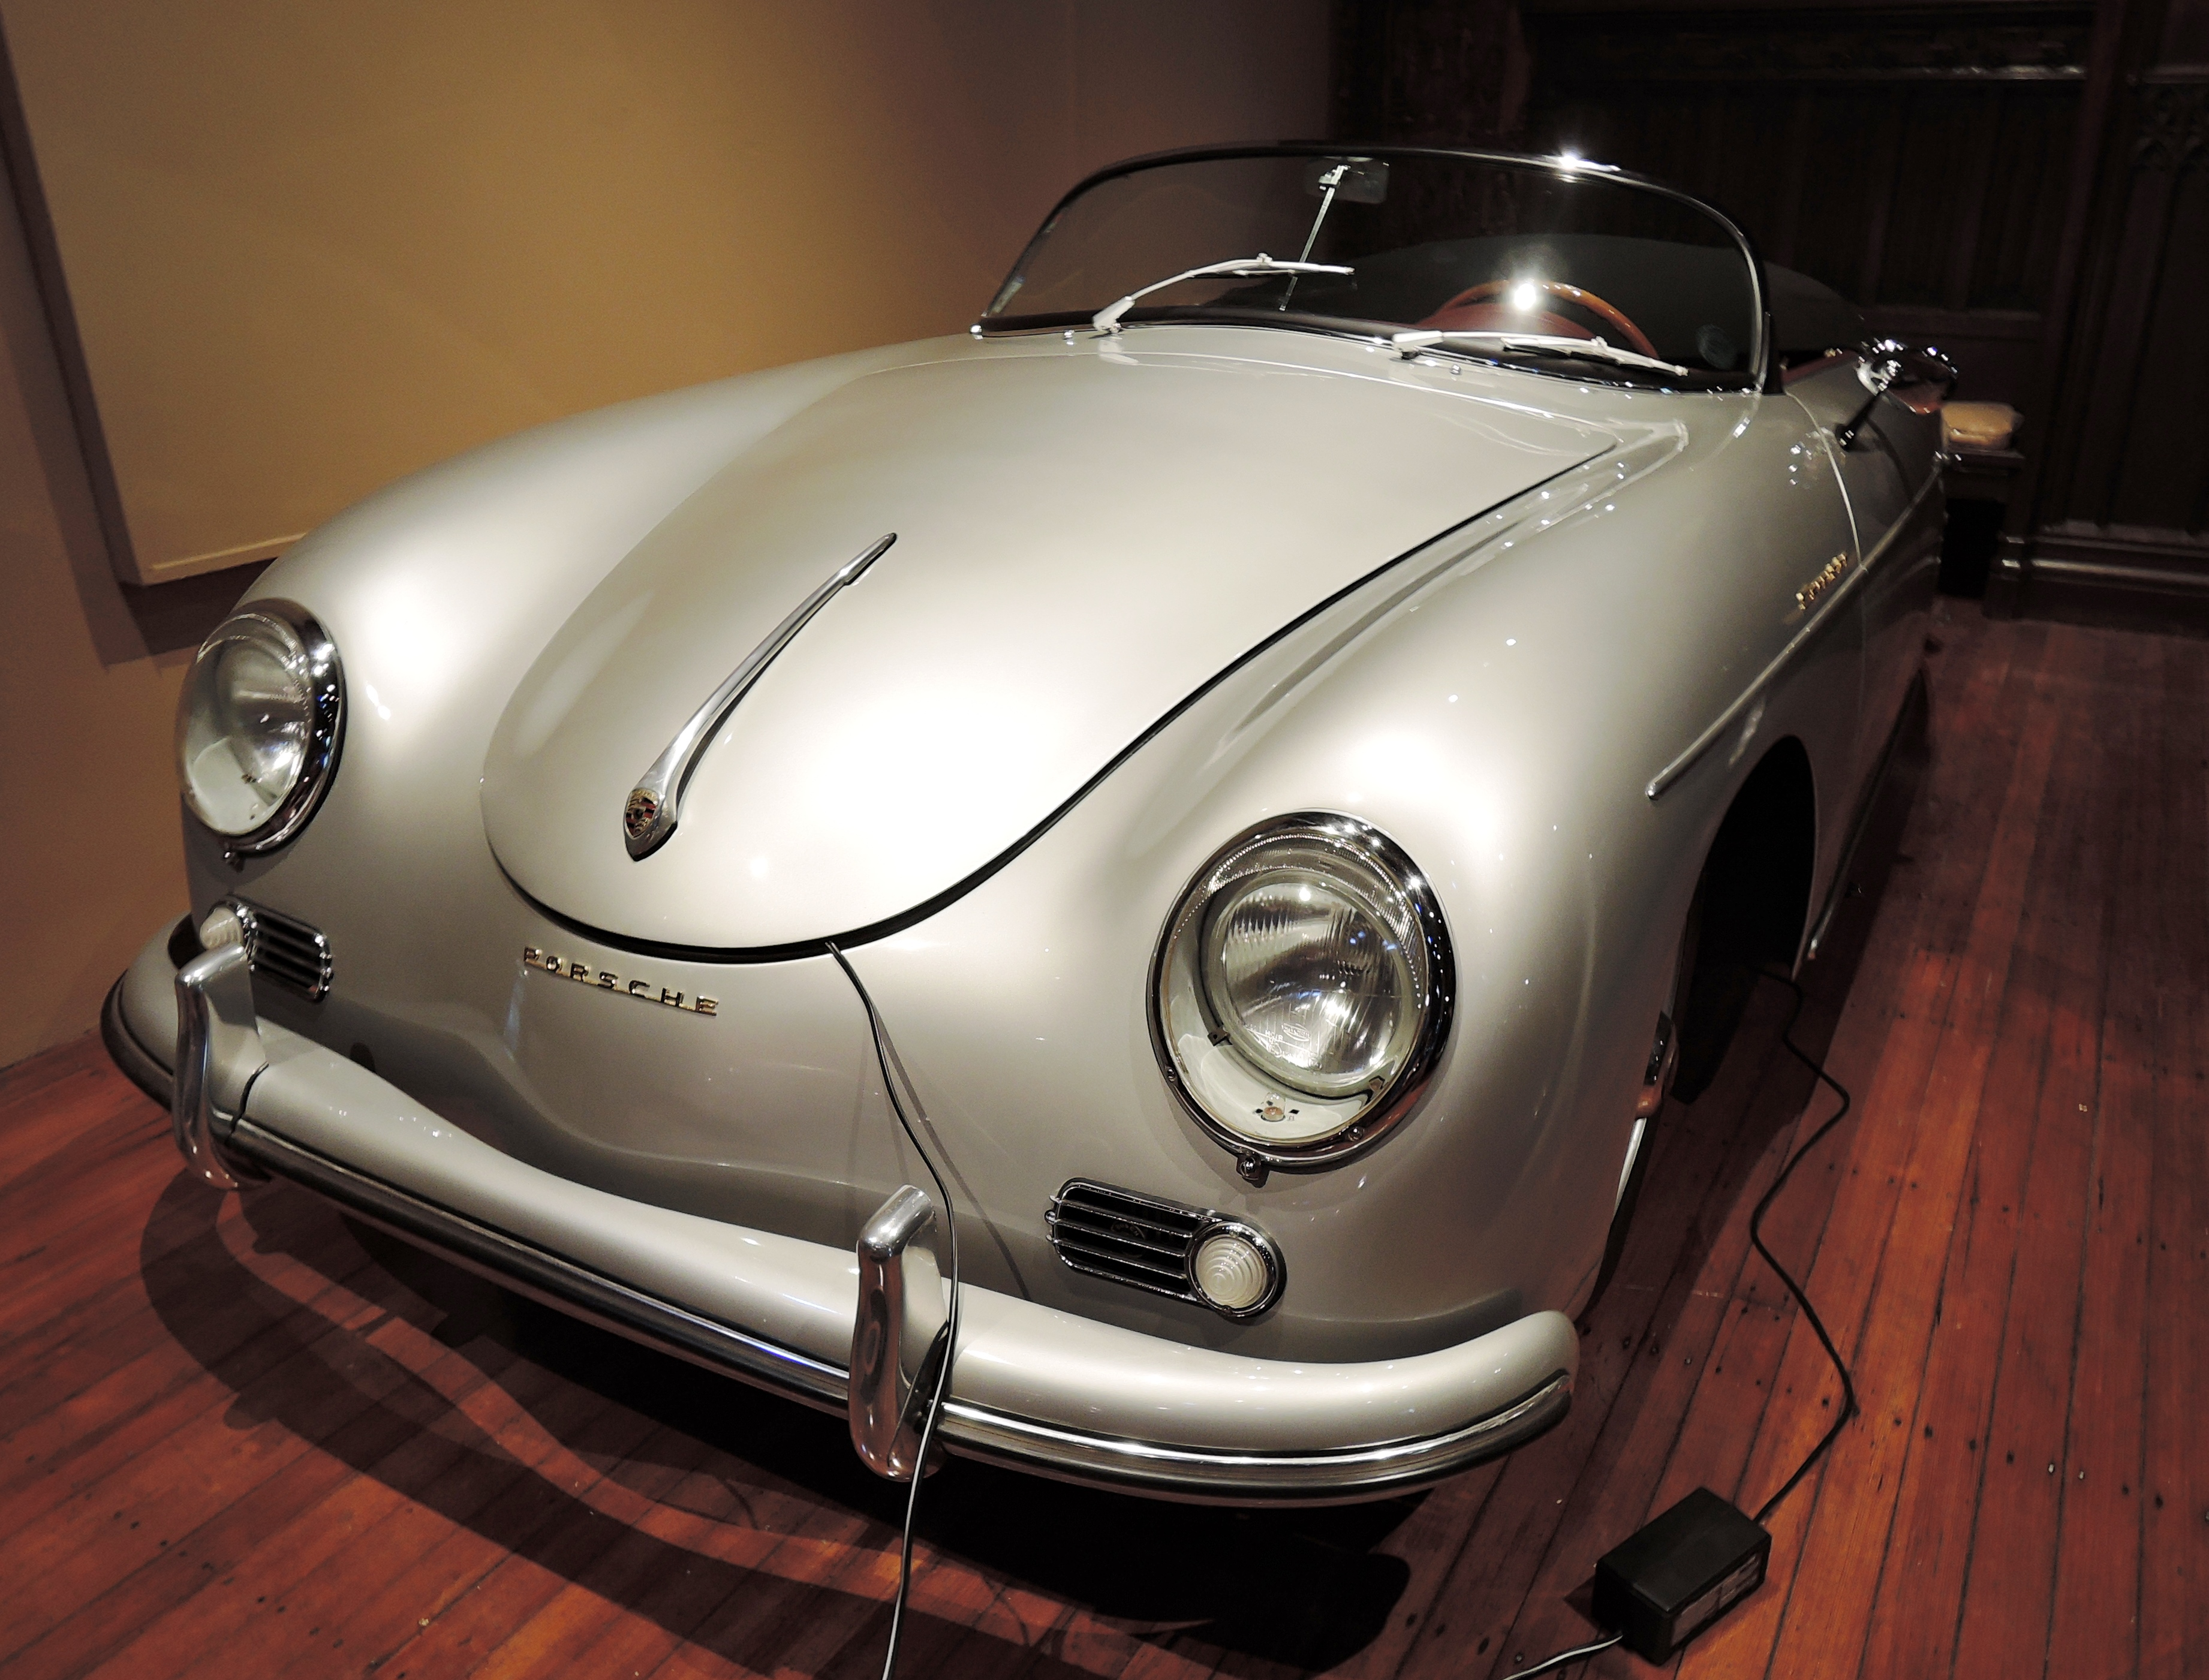 silver 1957 Porsche 356A Speedster - cars and coffee at larz